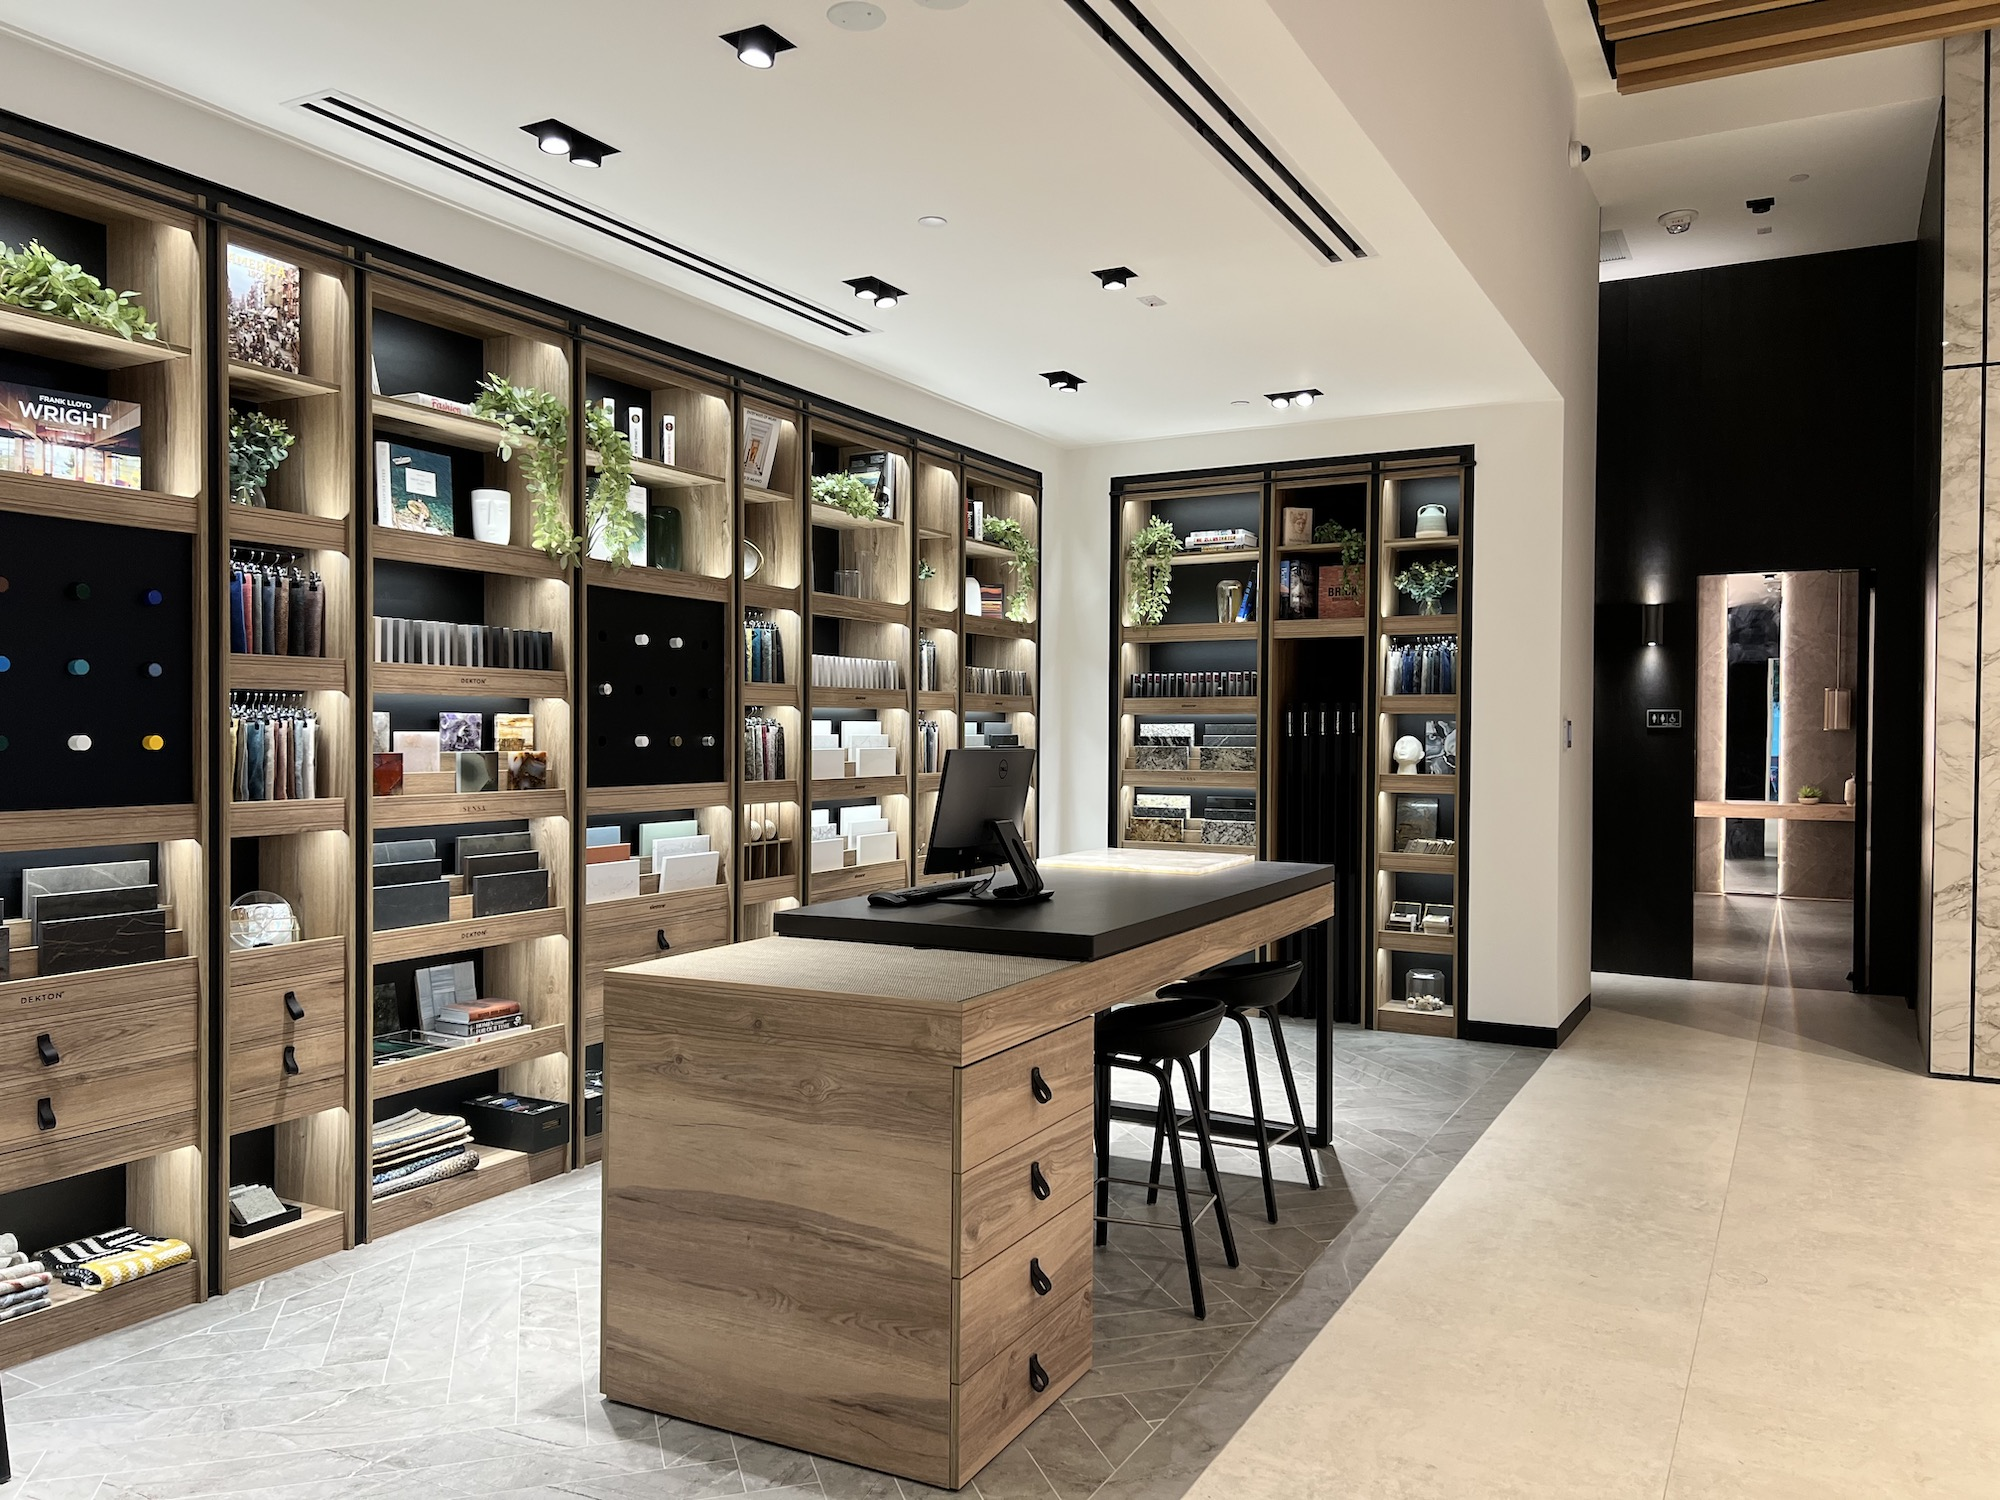 Image of IMG 0162 in Cosentino Opens Atlanta City Center, the Second North American Location for its Reimagined Showroom Experience - Cosentino